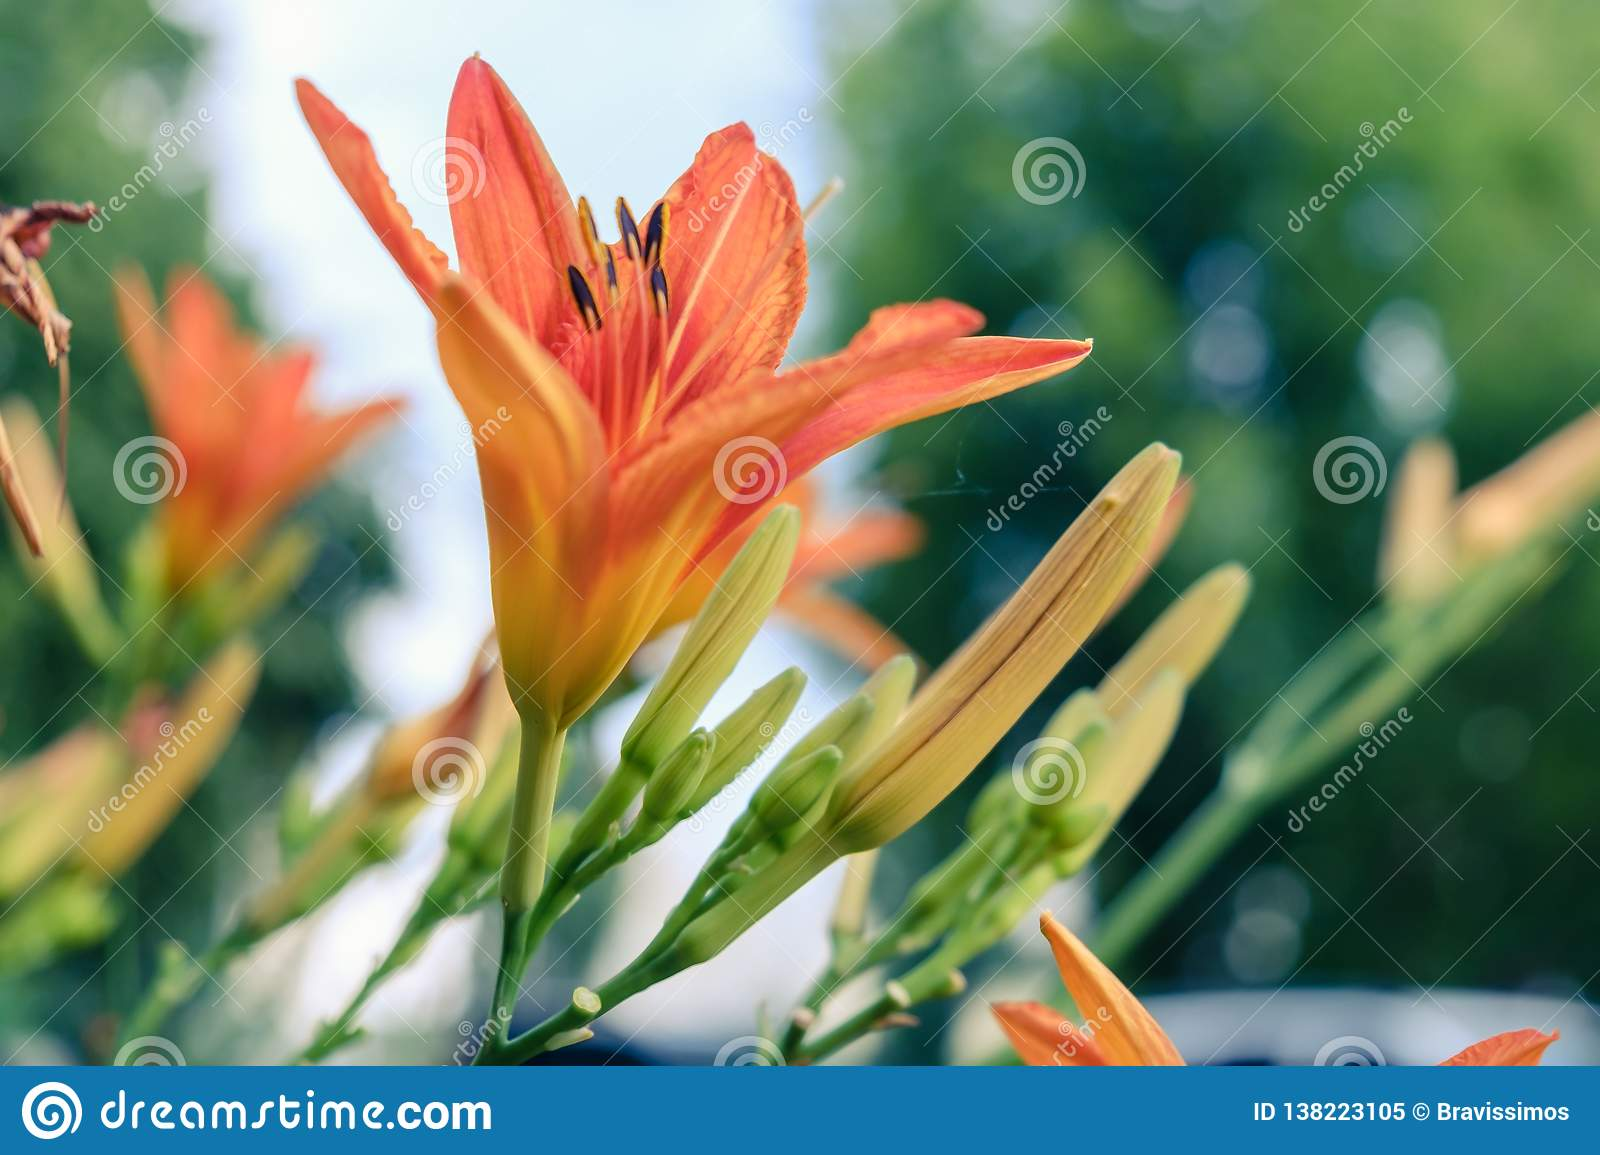 621f0ffeee762 Orange Lilly Background Beautiful Bloom. Nature Holiday Stock Image ...